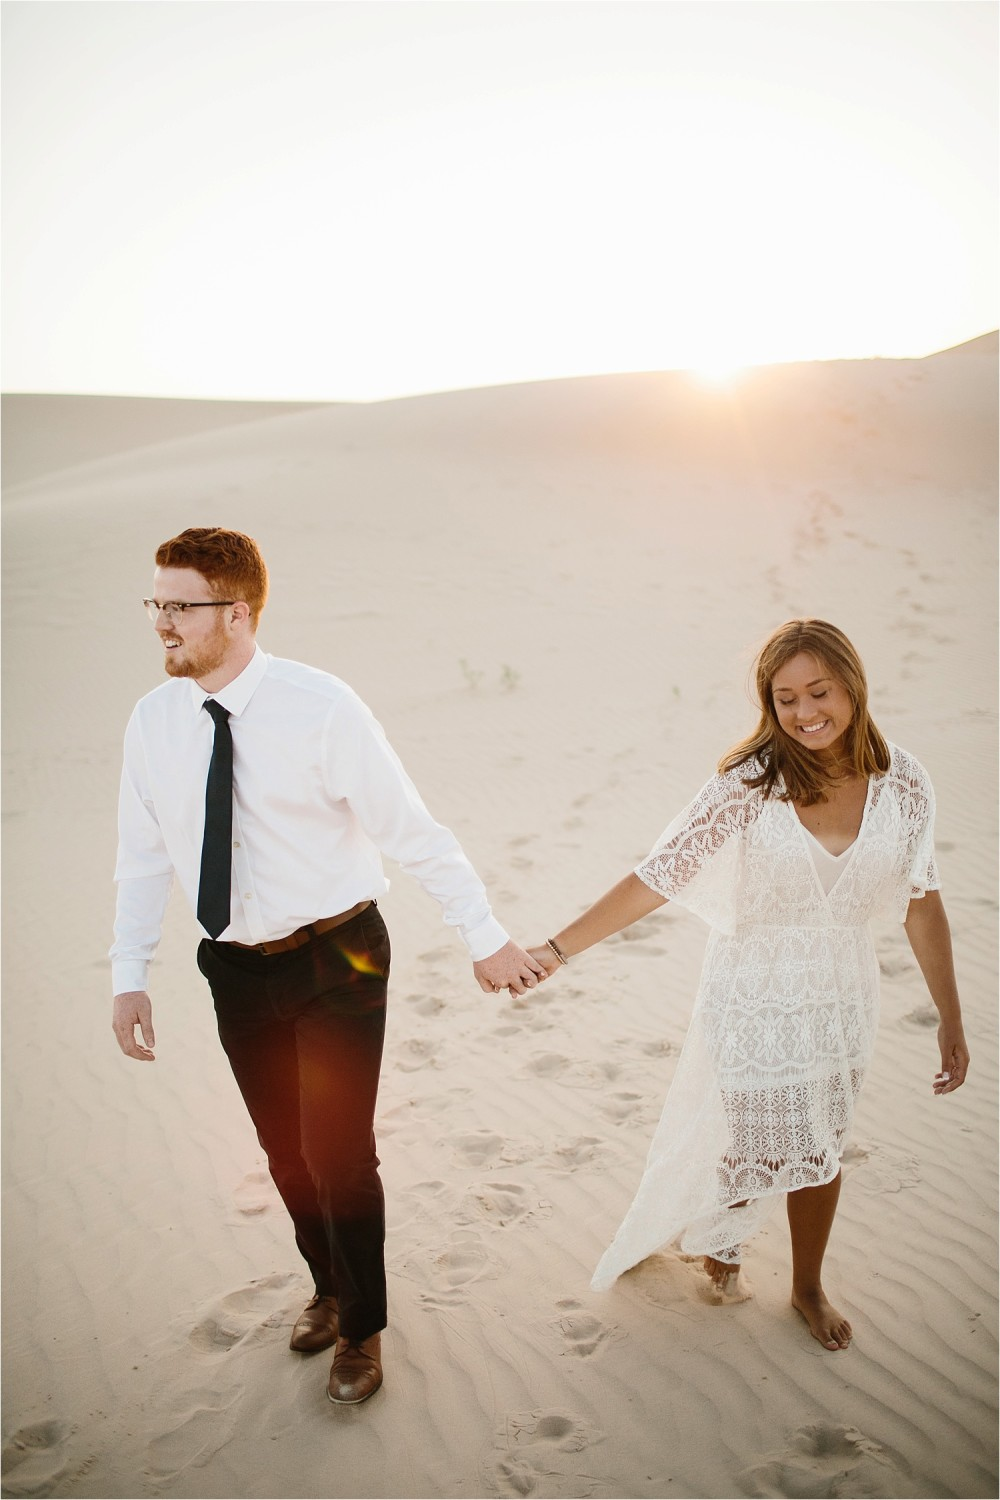 Lauren + Jacob __ a monahans sand dunes engagement session at sunrise by North Texas Wedding Photographer, Rachel Meagan Photography __ 12